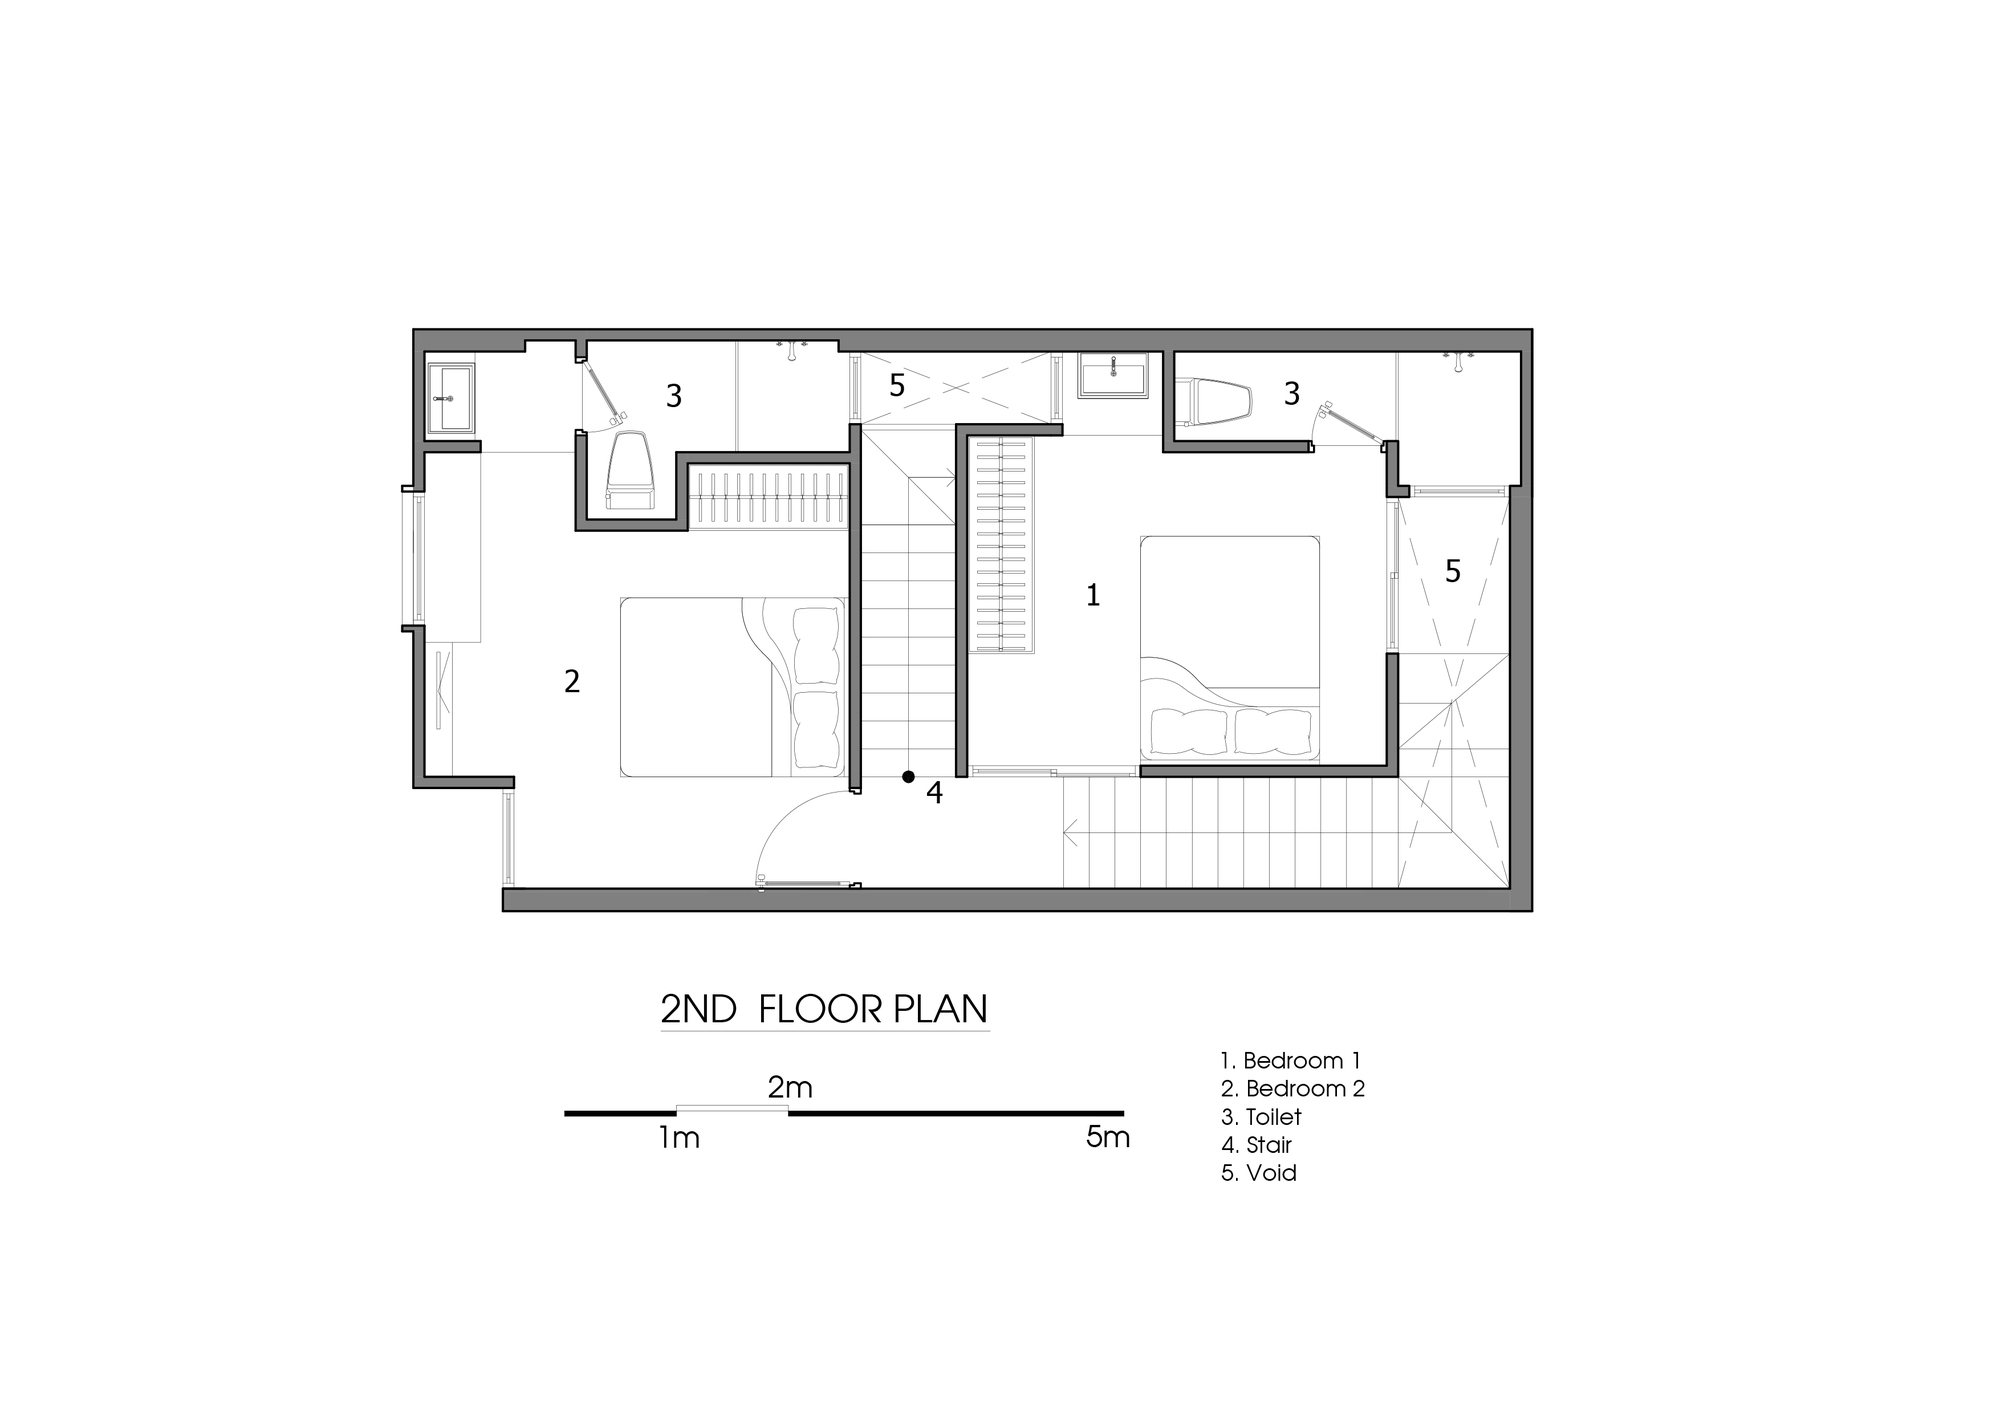 m2 _2nd_FLOOR_PLAN.jpg